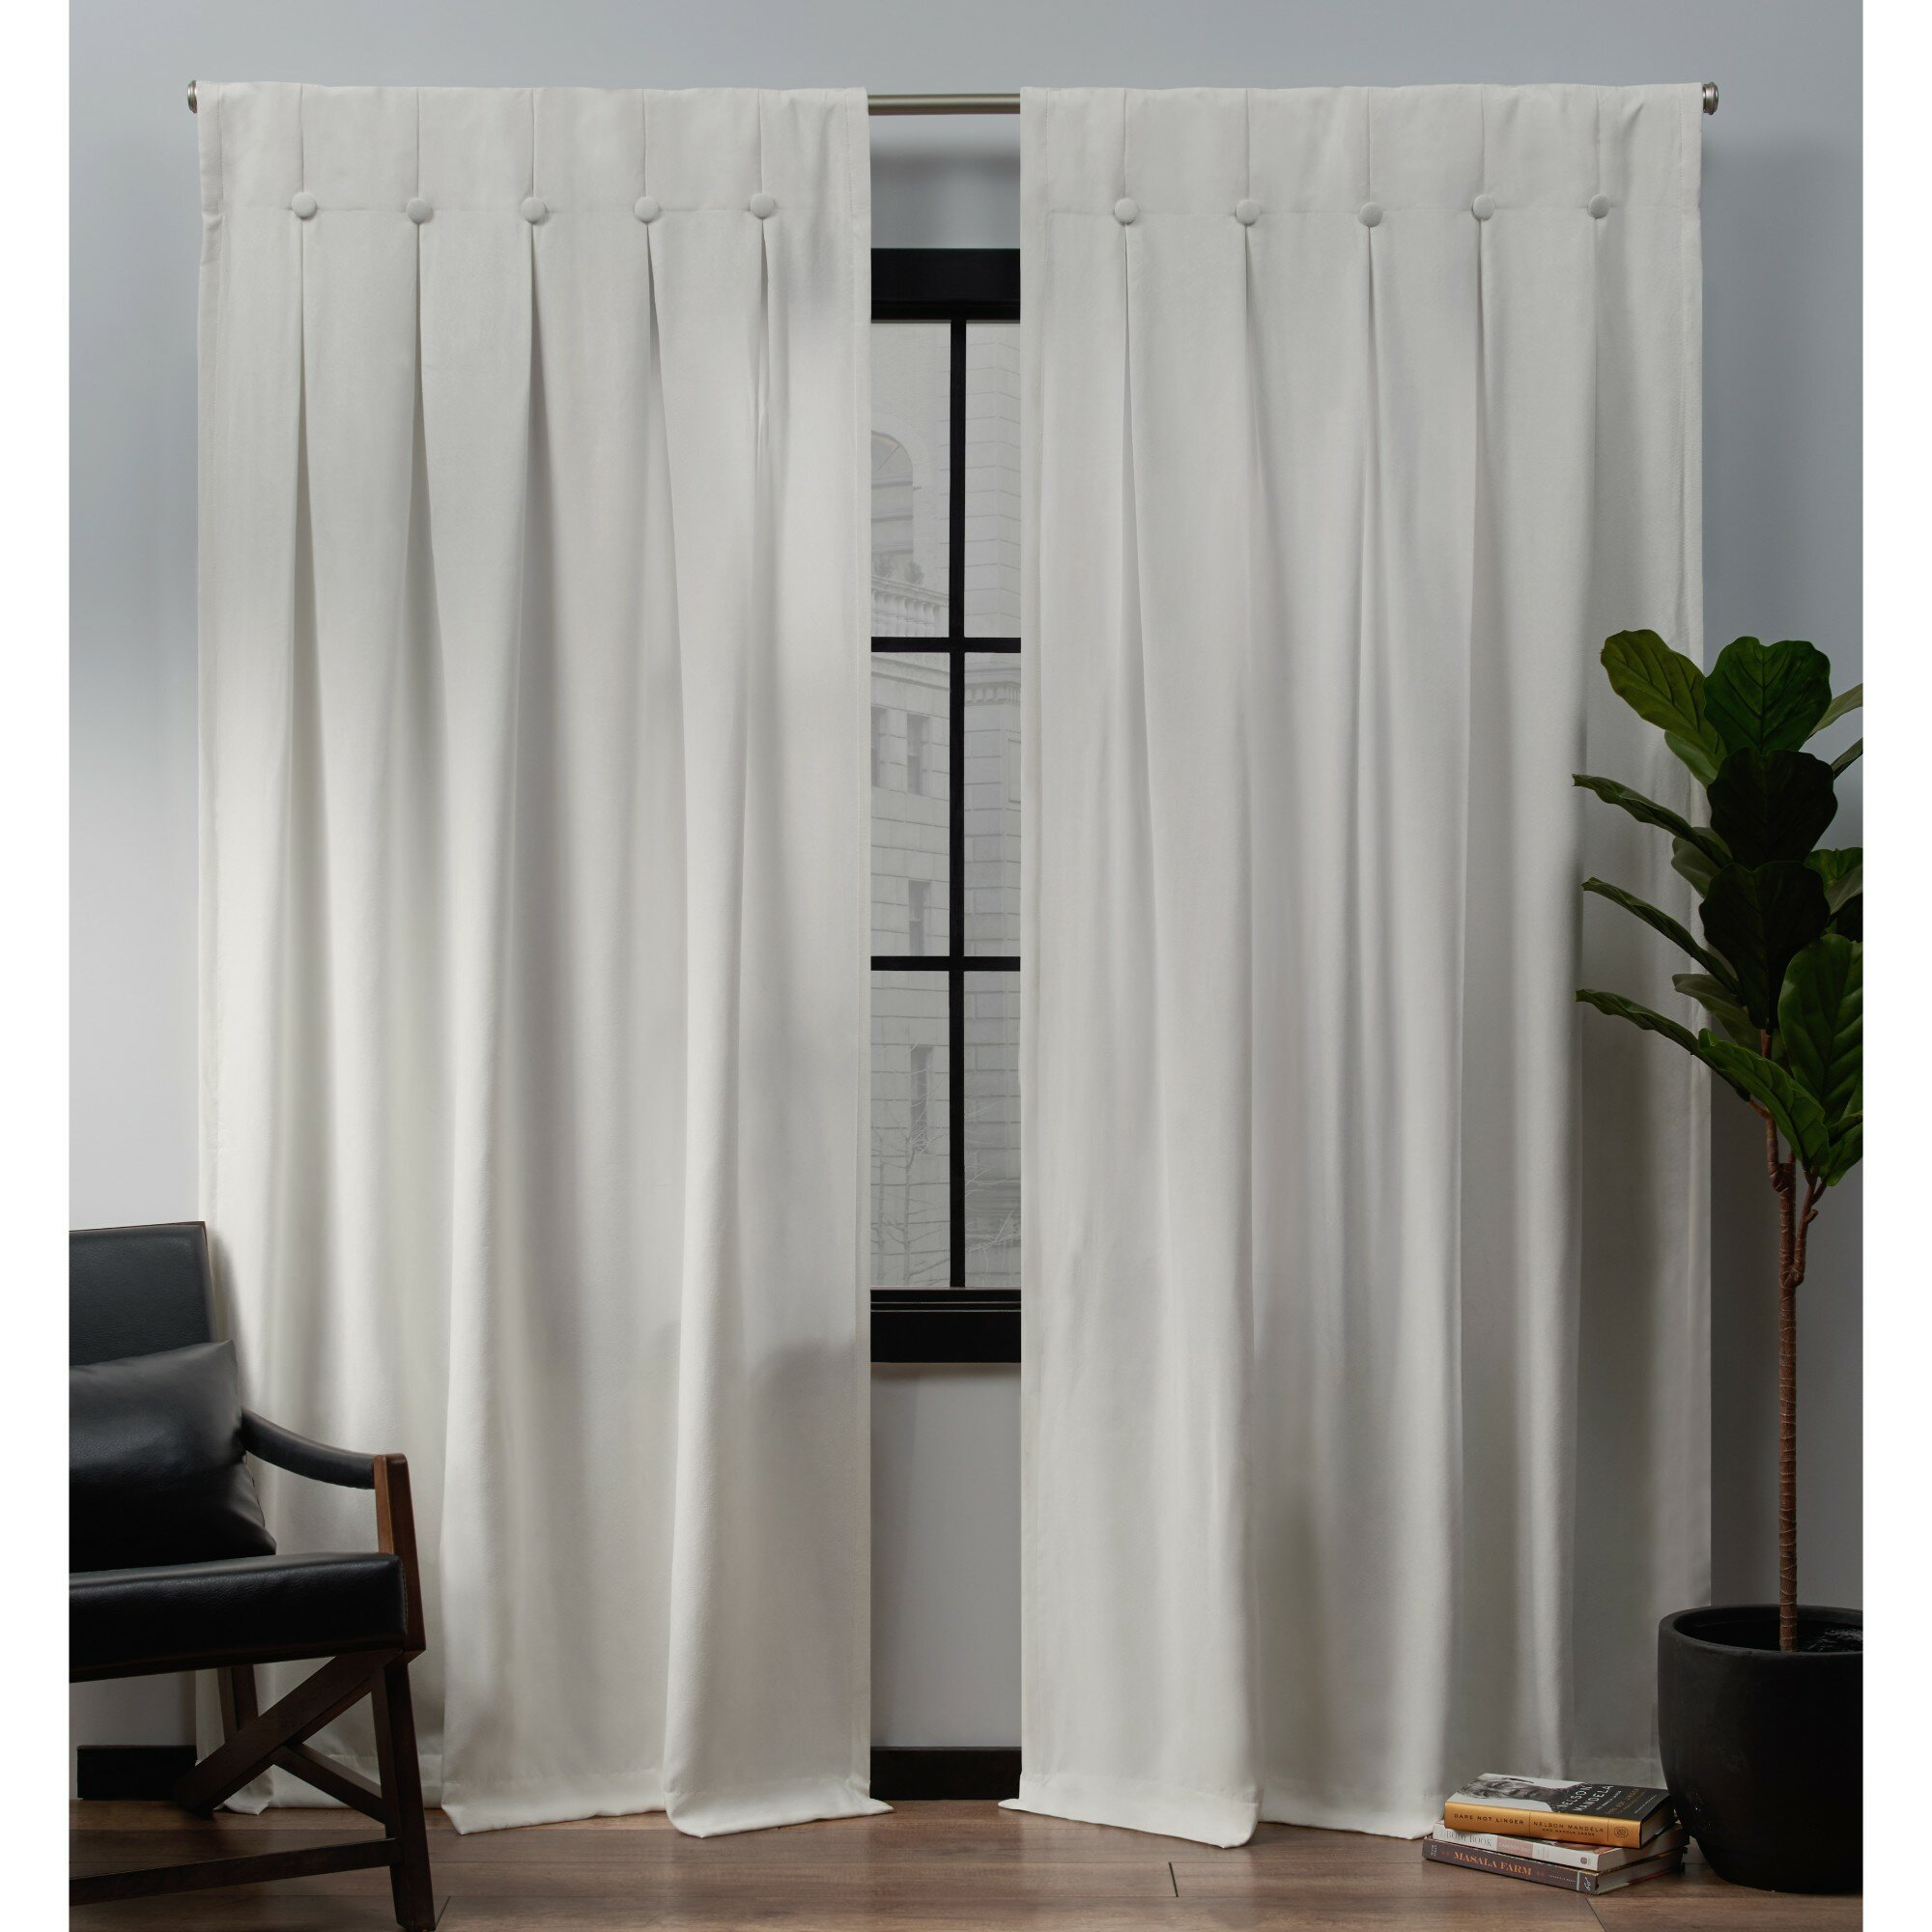 Darby Home Co Glossop Semi Sheer Tab Top Panel Pair | Wayfair For Sateen Woven Blackout Curtain Panel Pairs With Pinch Pleat Top (View 9 of 20)